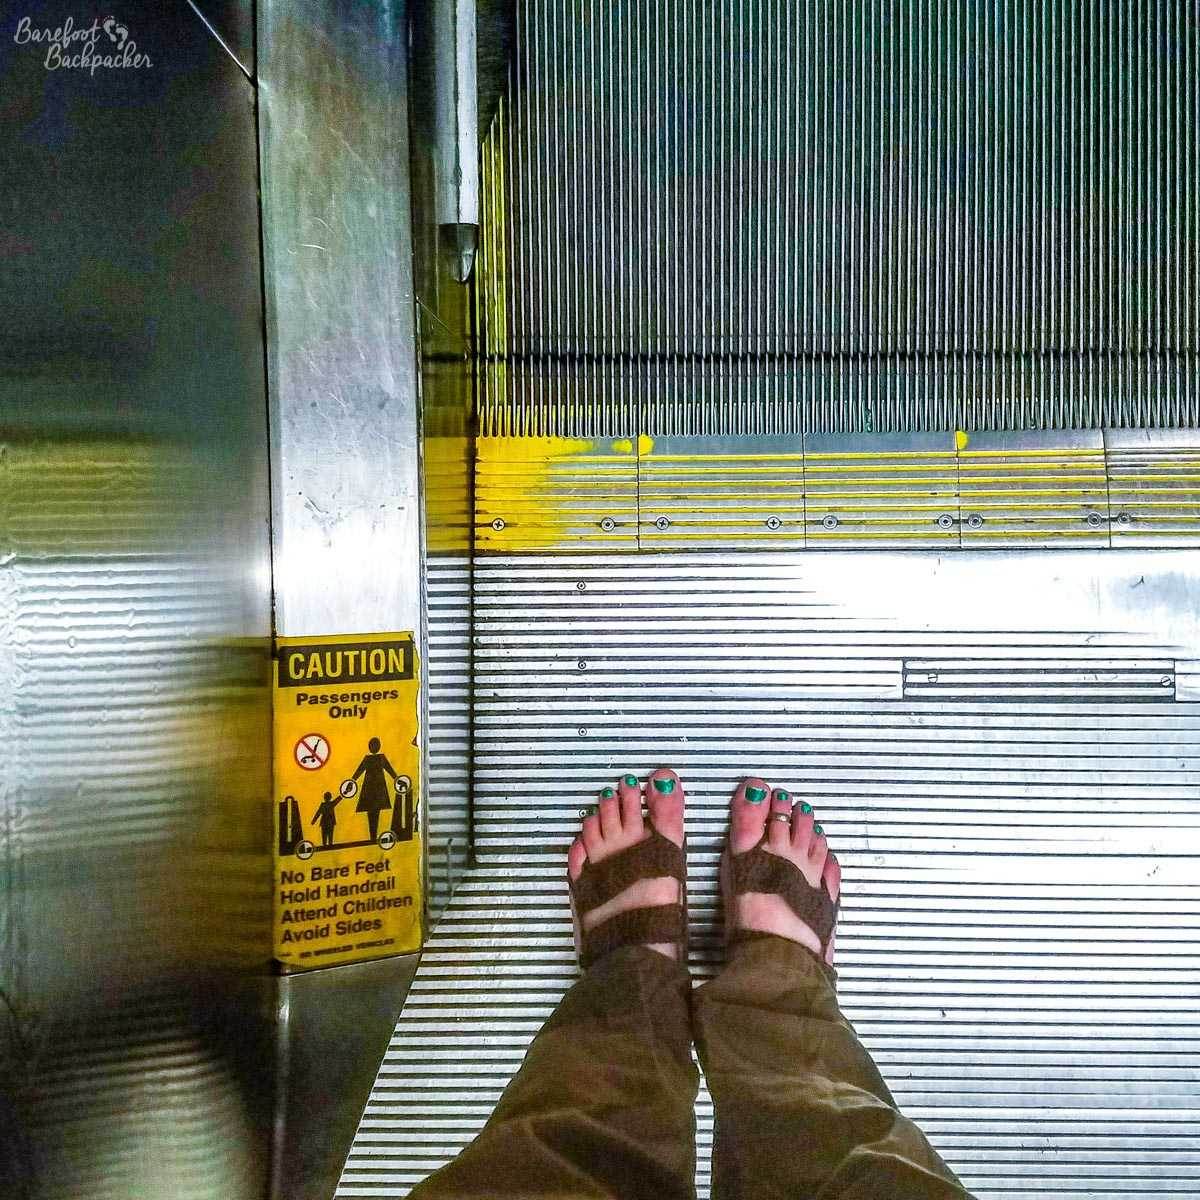 Barefoot on an escalator in an airport, next to a sign that says 'no bare feet'. I am such a rebel.